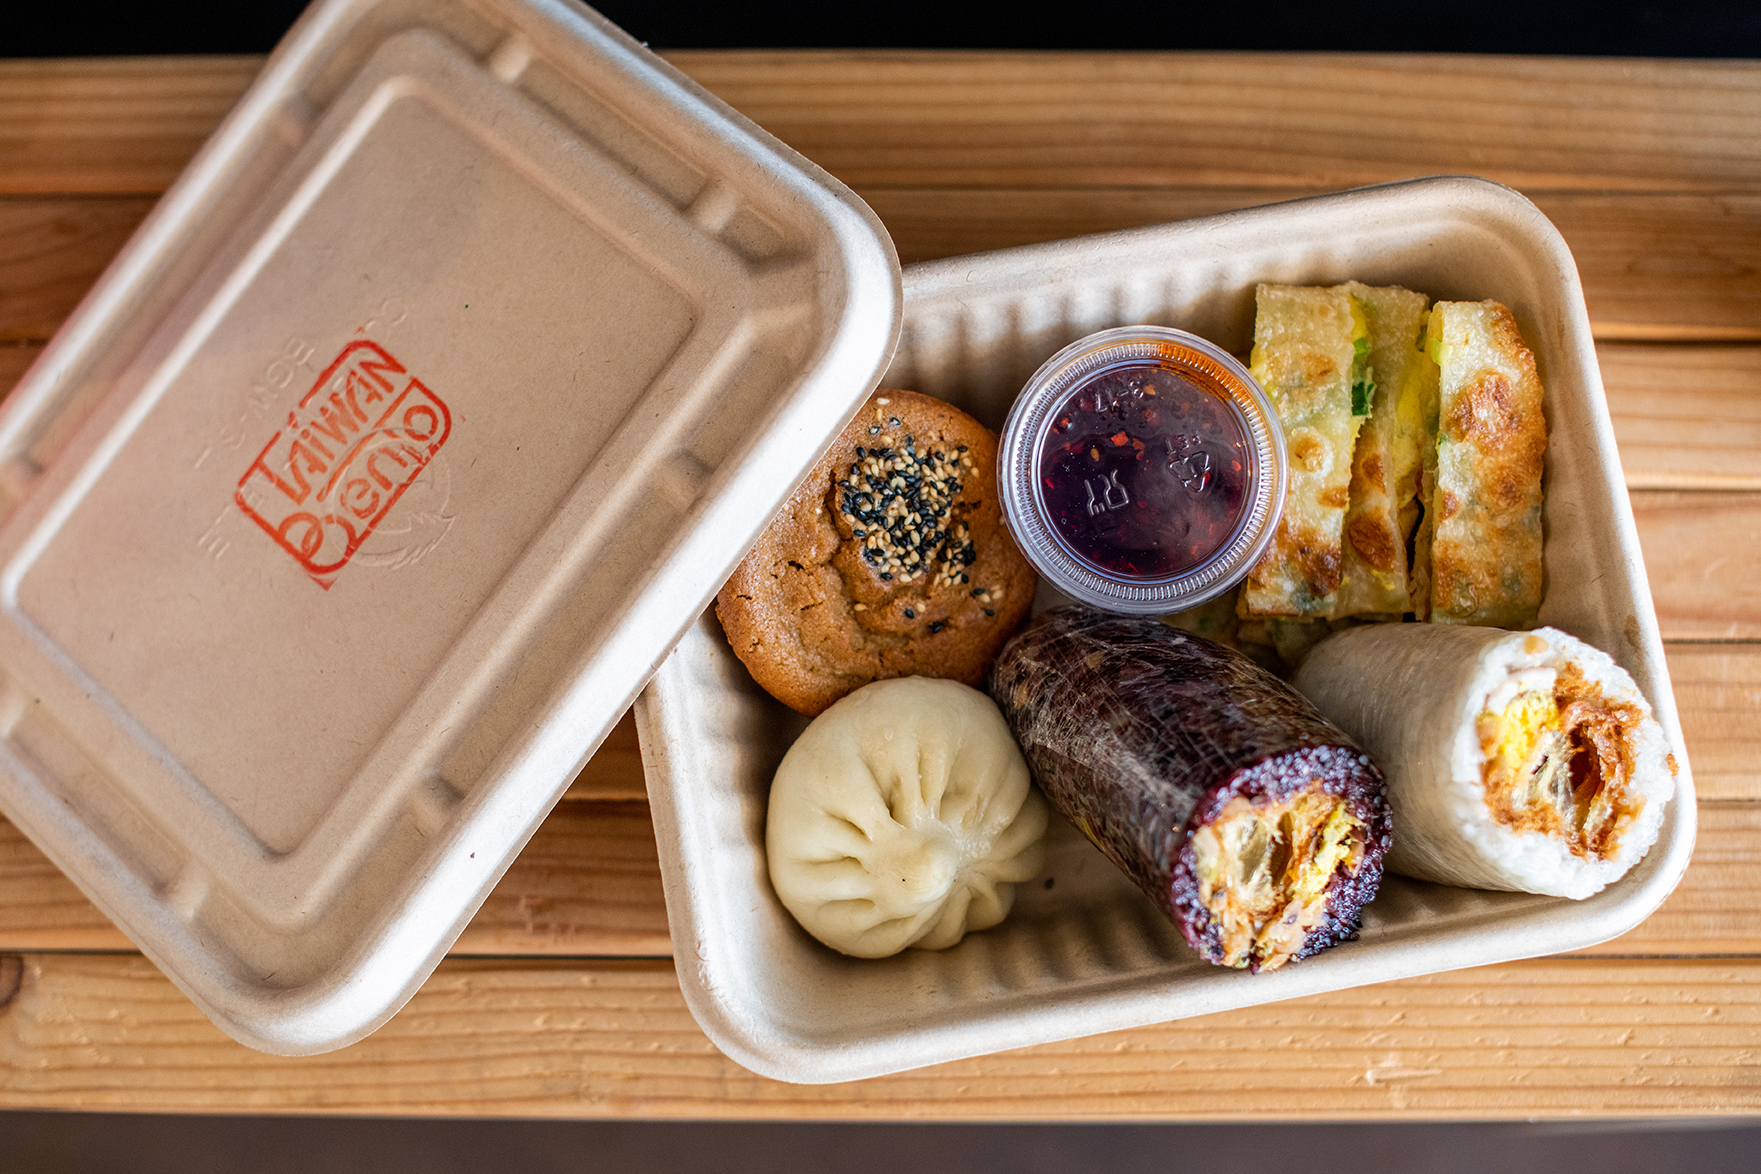 Overhead view of a takeout box with sticky rice rolls, scallion egg pancake, and other Taiwanese breakfast items from Taiwan Bento.